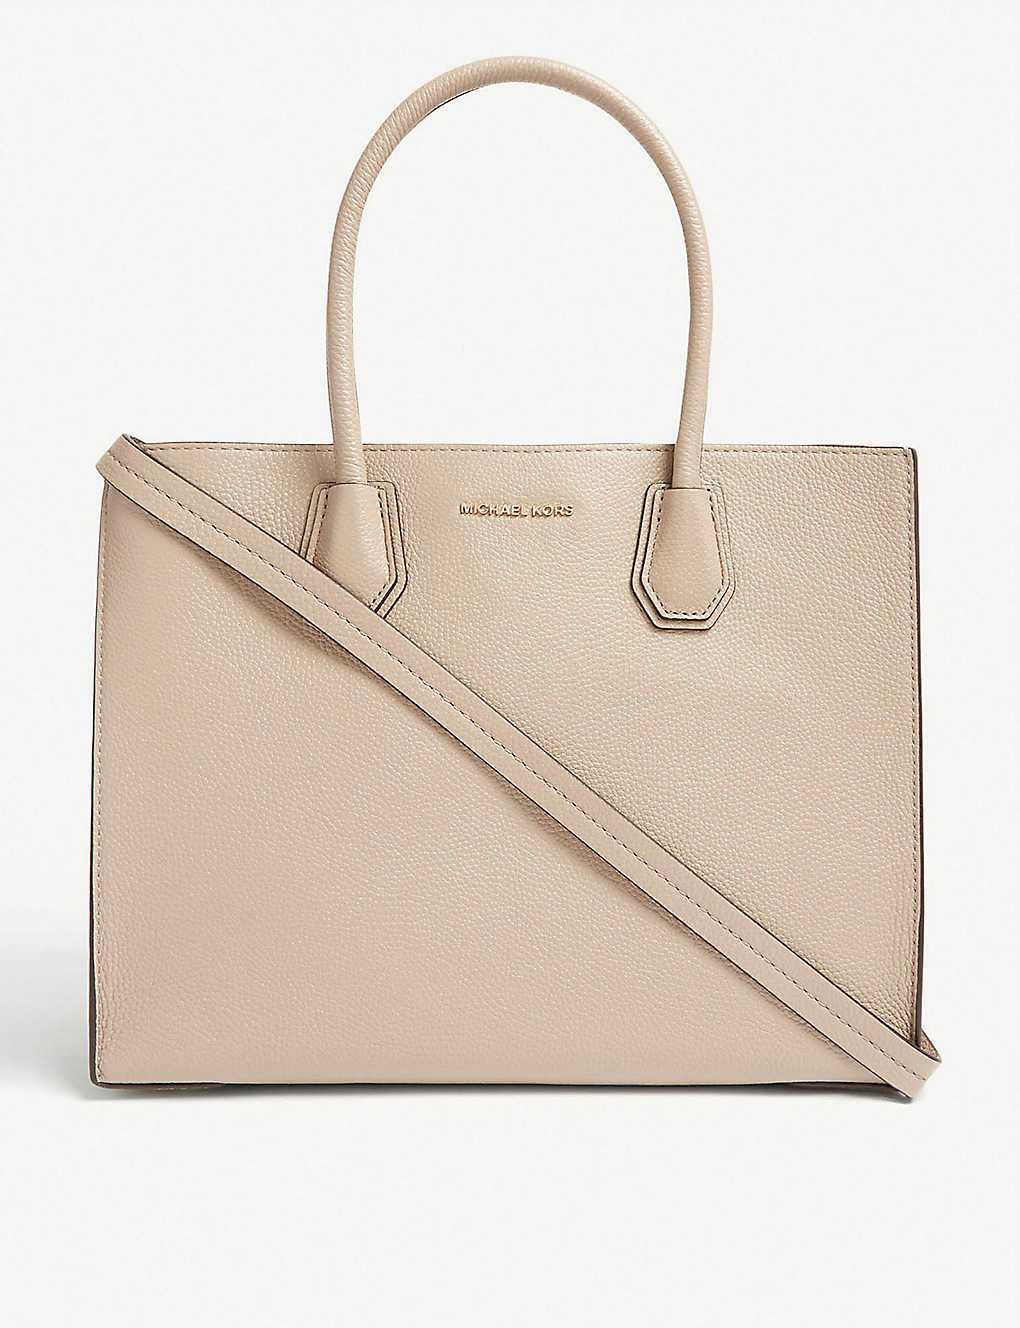 dcefbee2ffa98d MICHAEL MICHAEL KORS - Mercer large grained leather tote bag ...